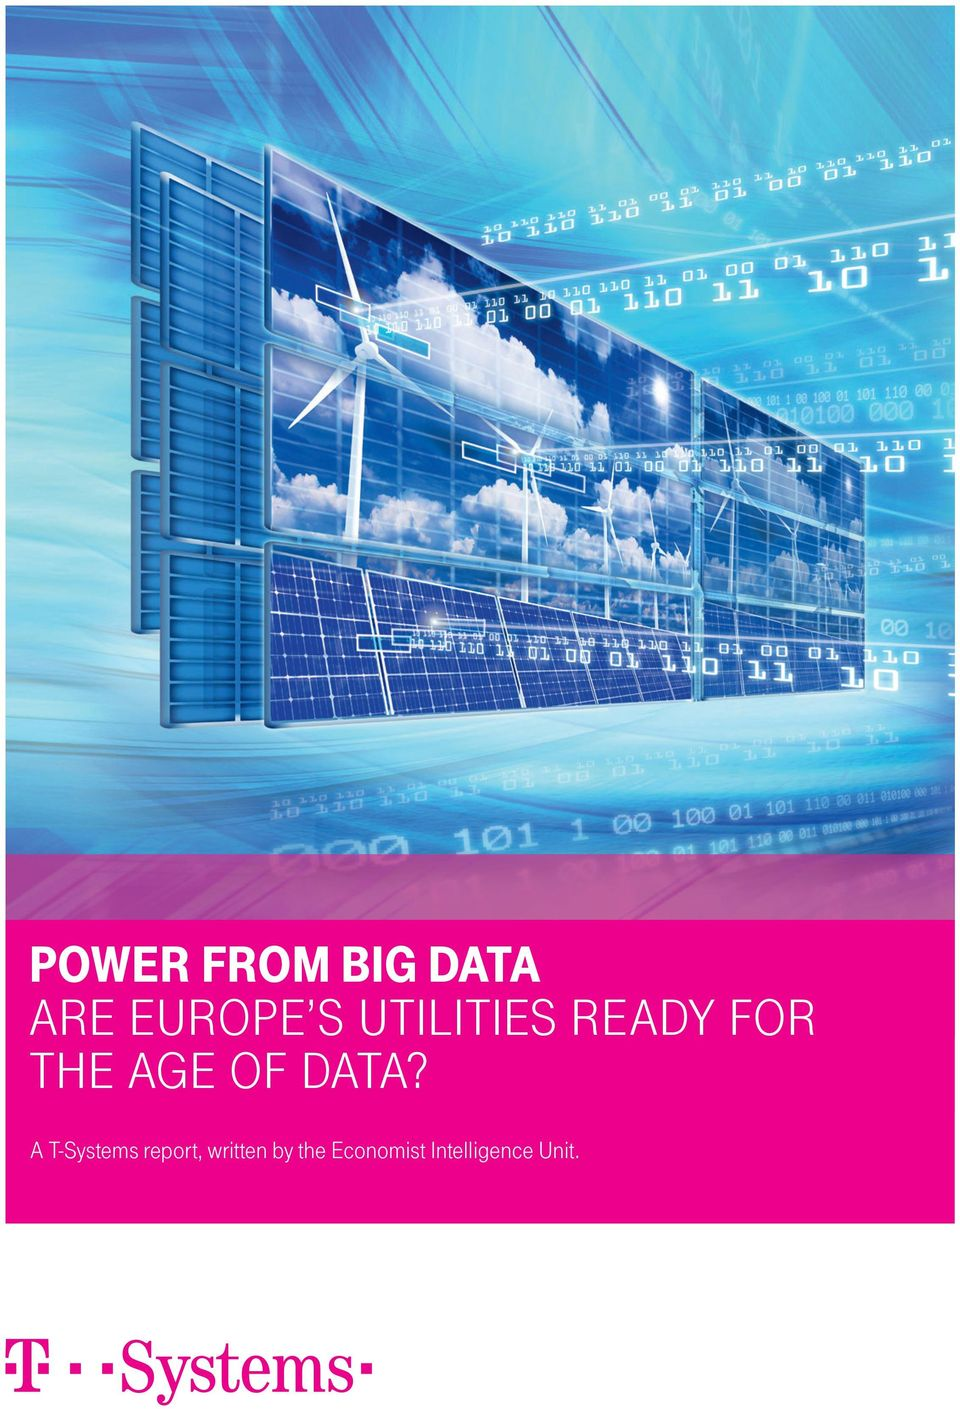 data? A T-Systems report, written